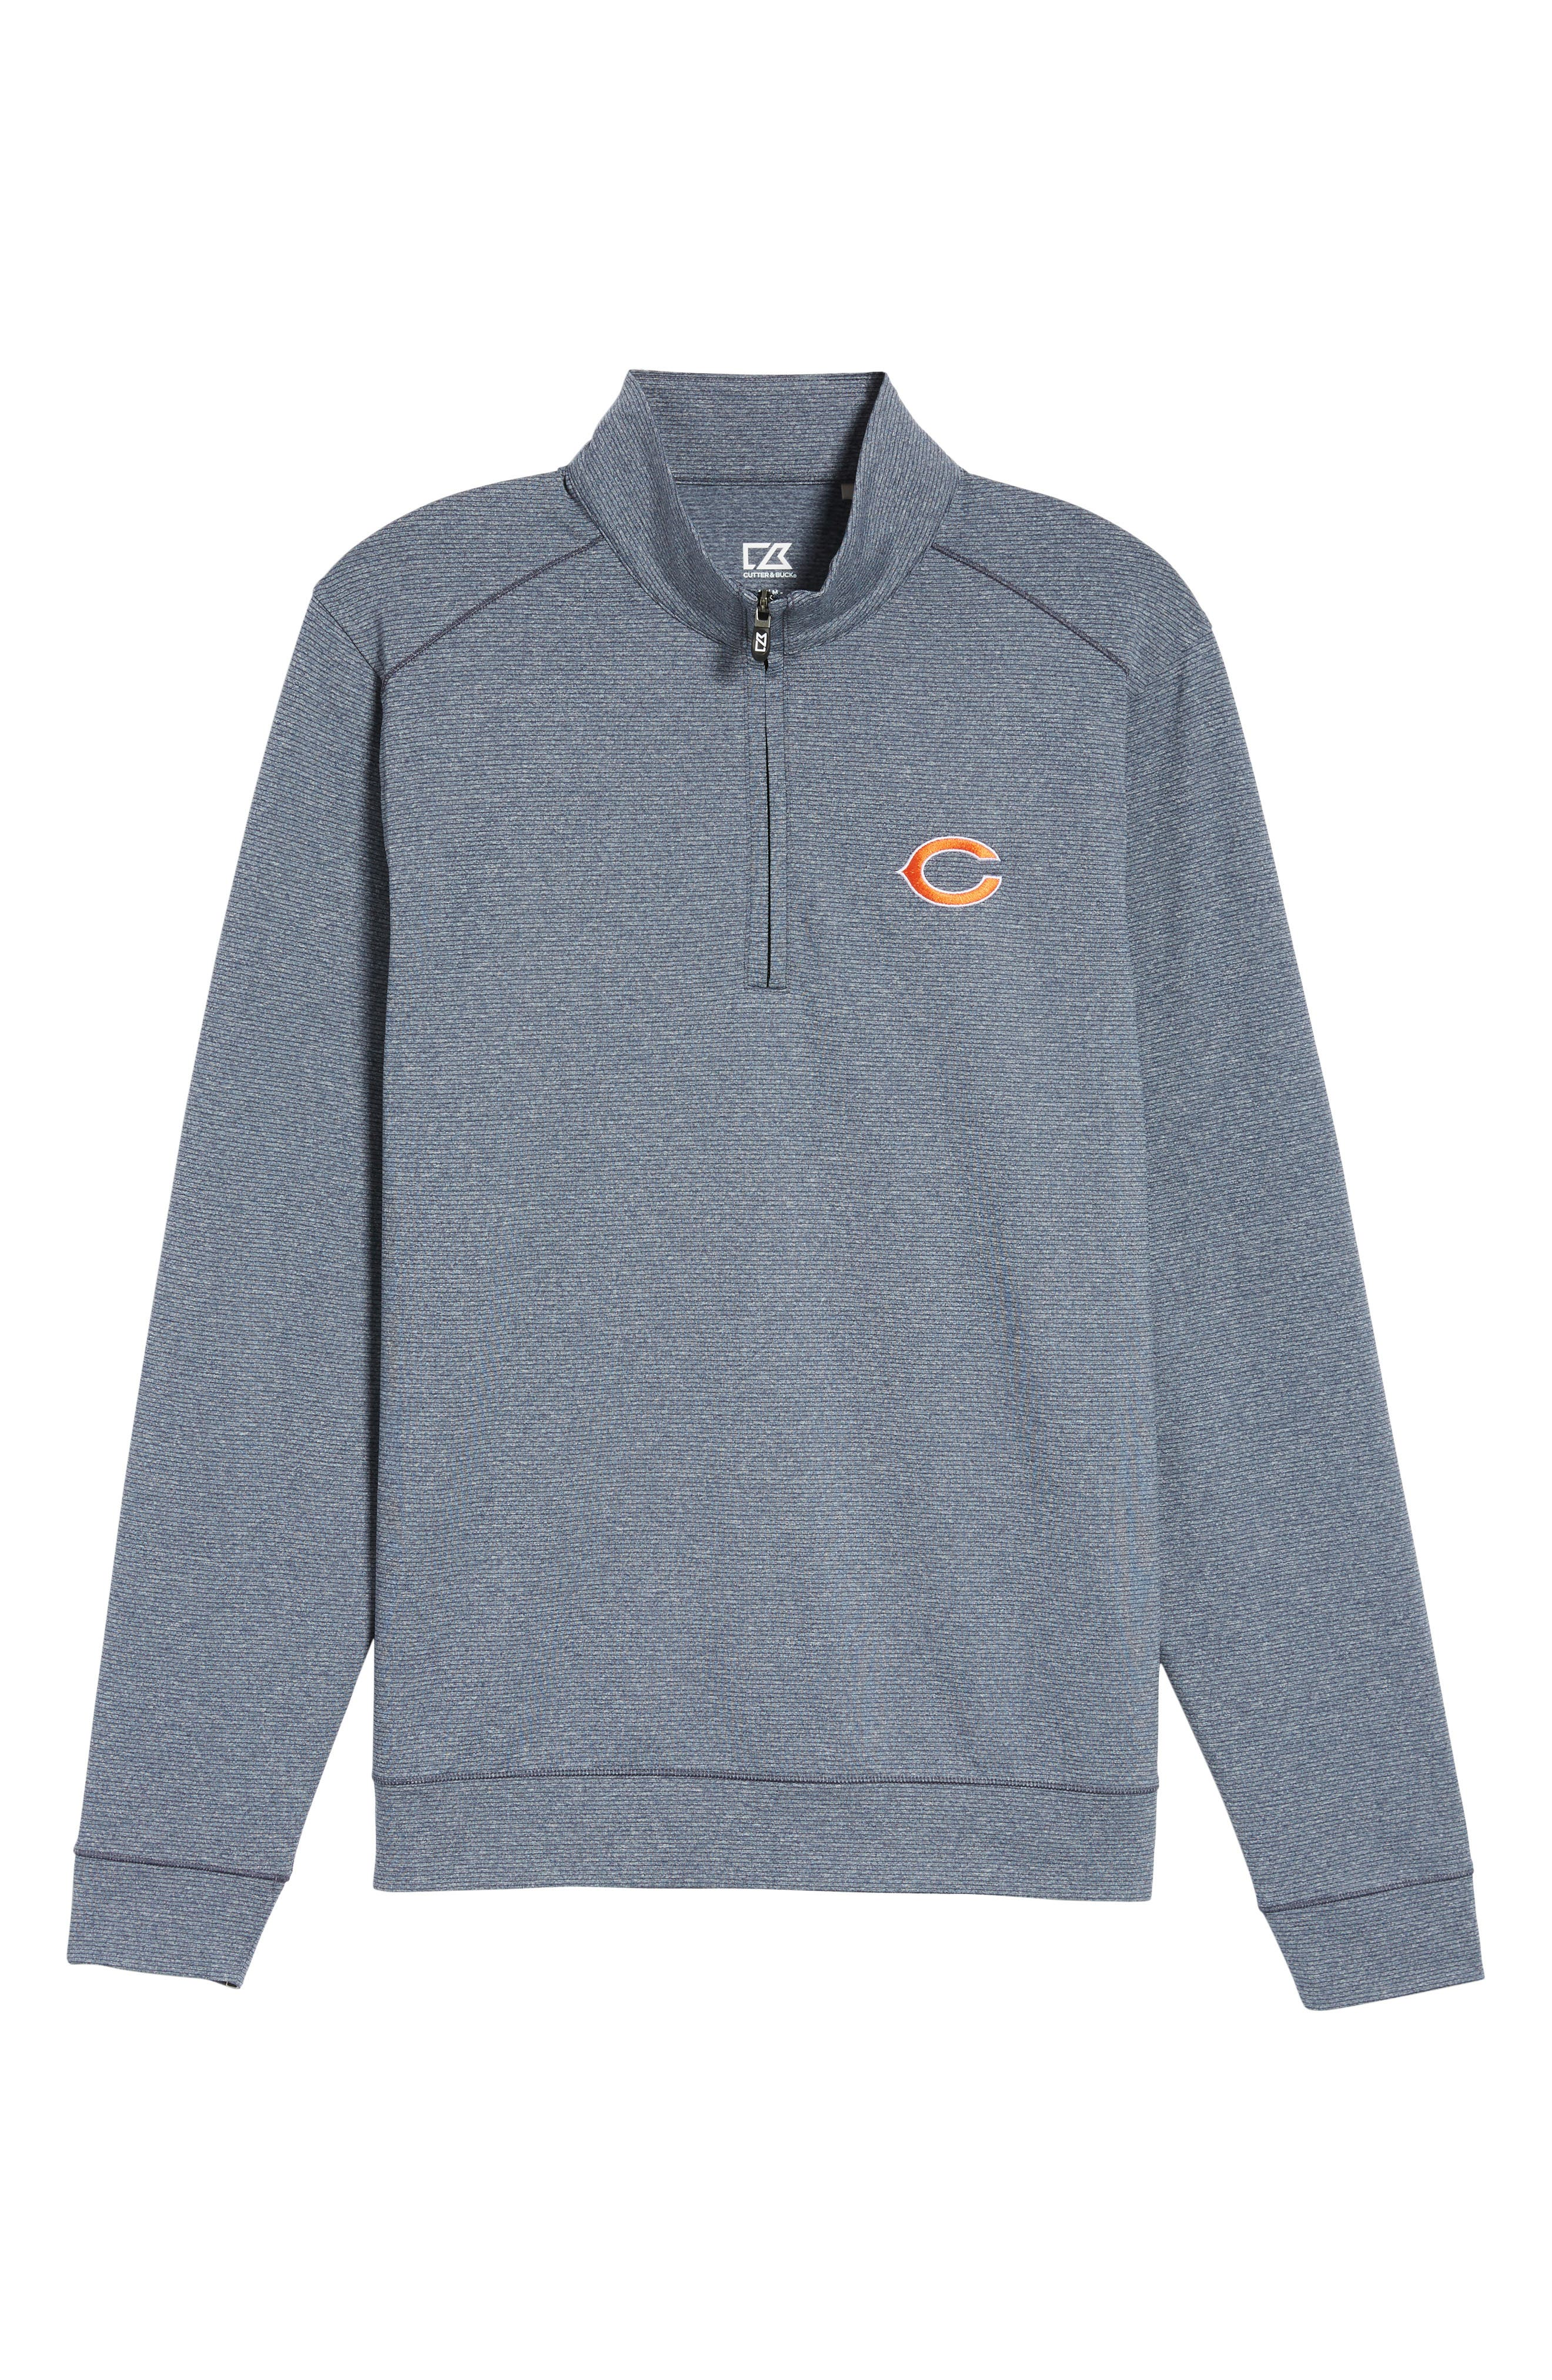 Shoreline - Chicago Bears Half Zip Pullover,                             Alternate thumbnail 6, color,                             976